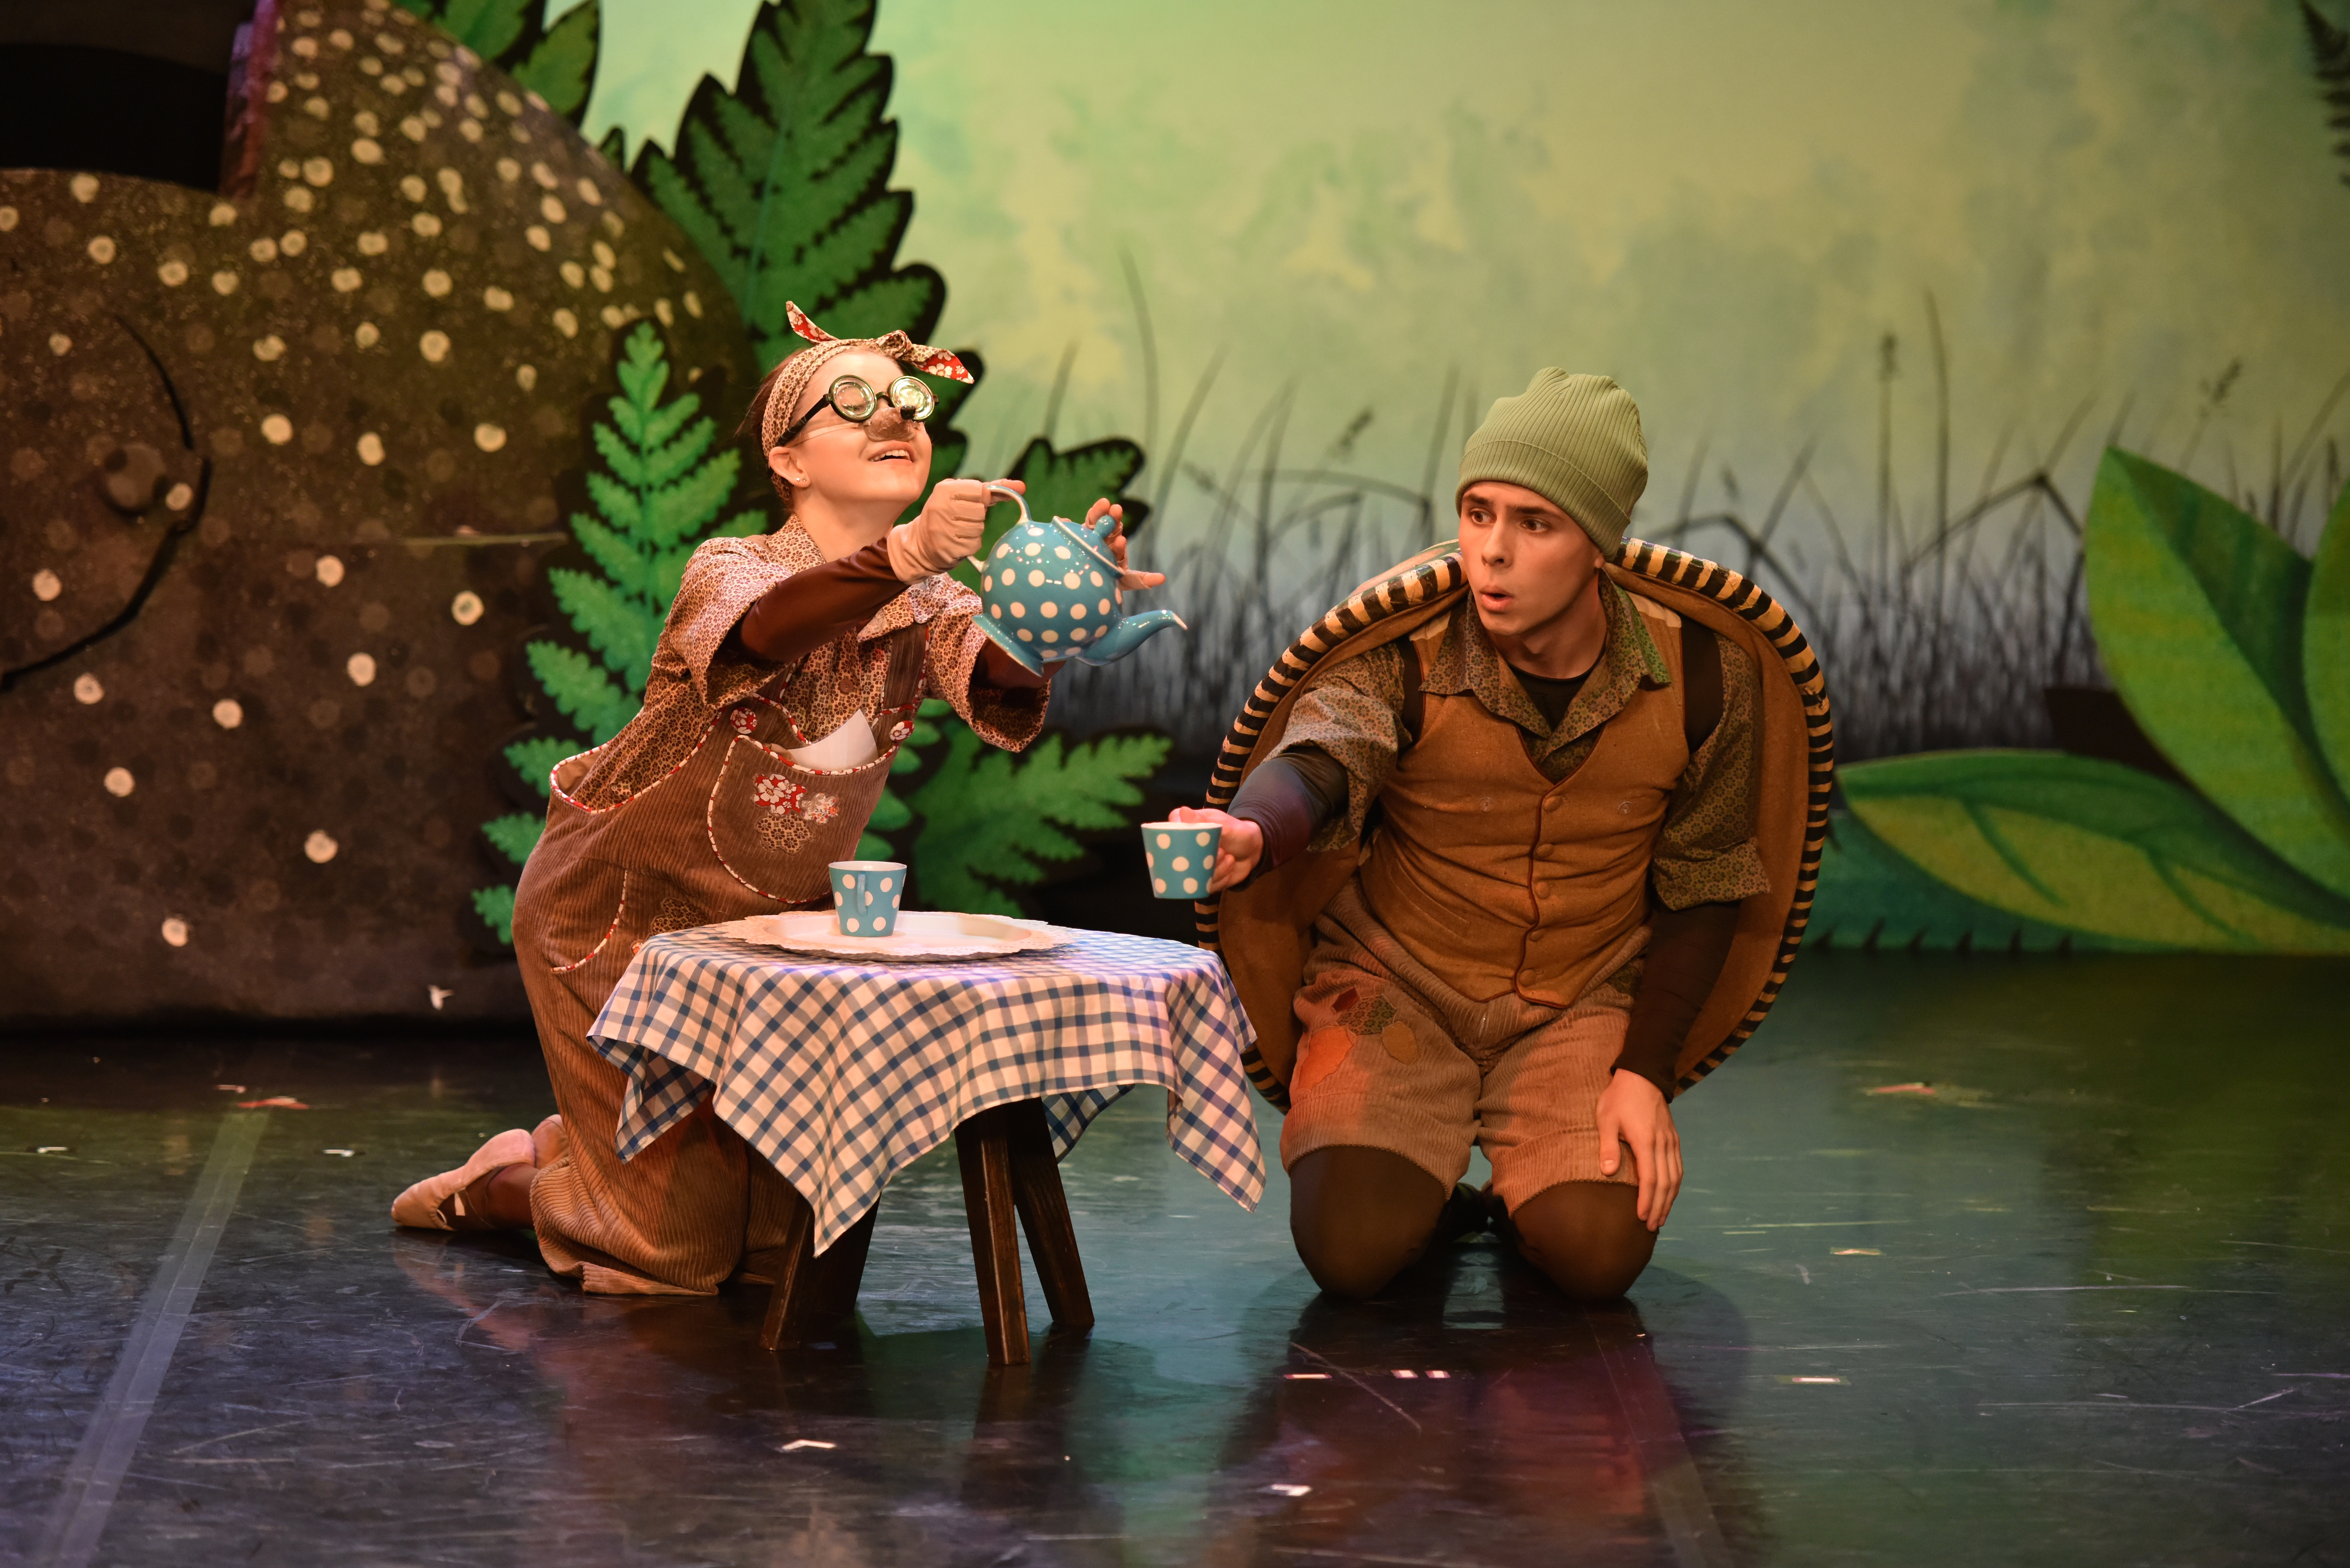 Northern Ballet's Tortoise & the Hare. Kaylee Marko and Gavin McCaig in Tortoise & the Hare. Photo Brian Slater.